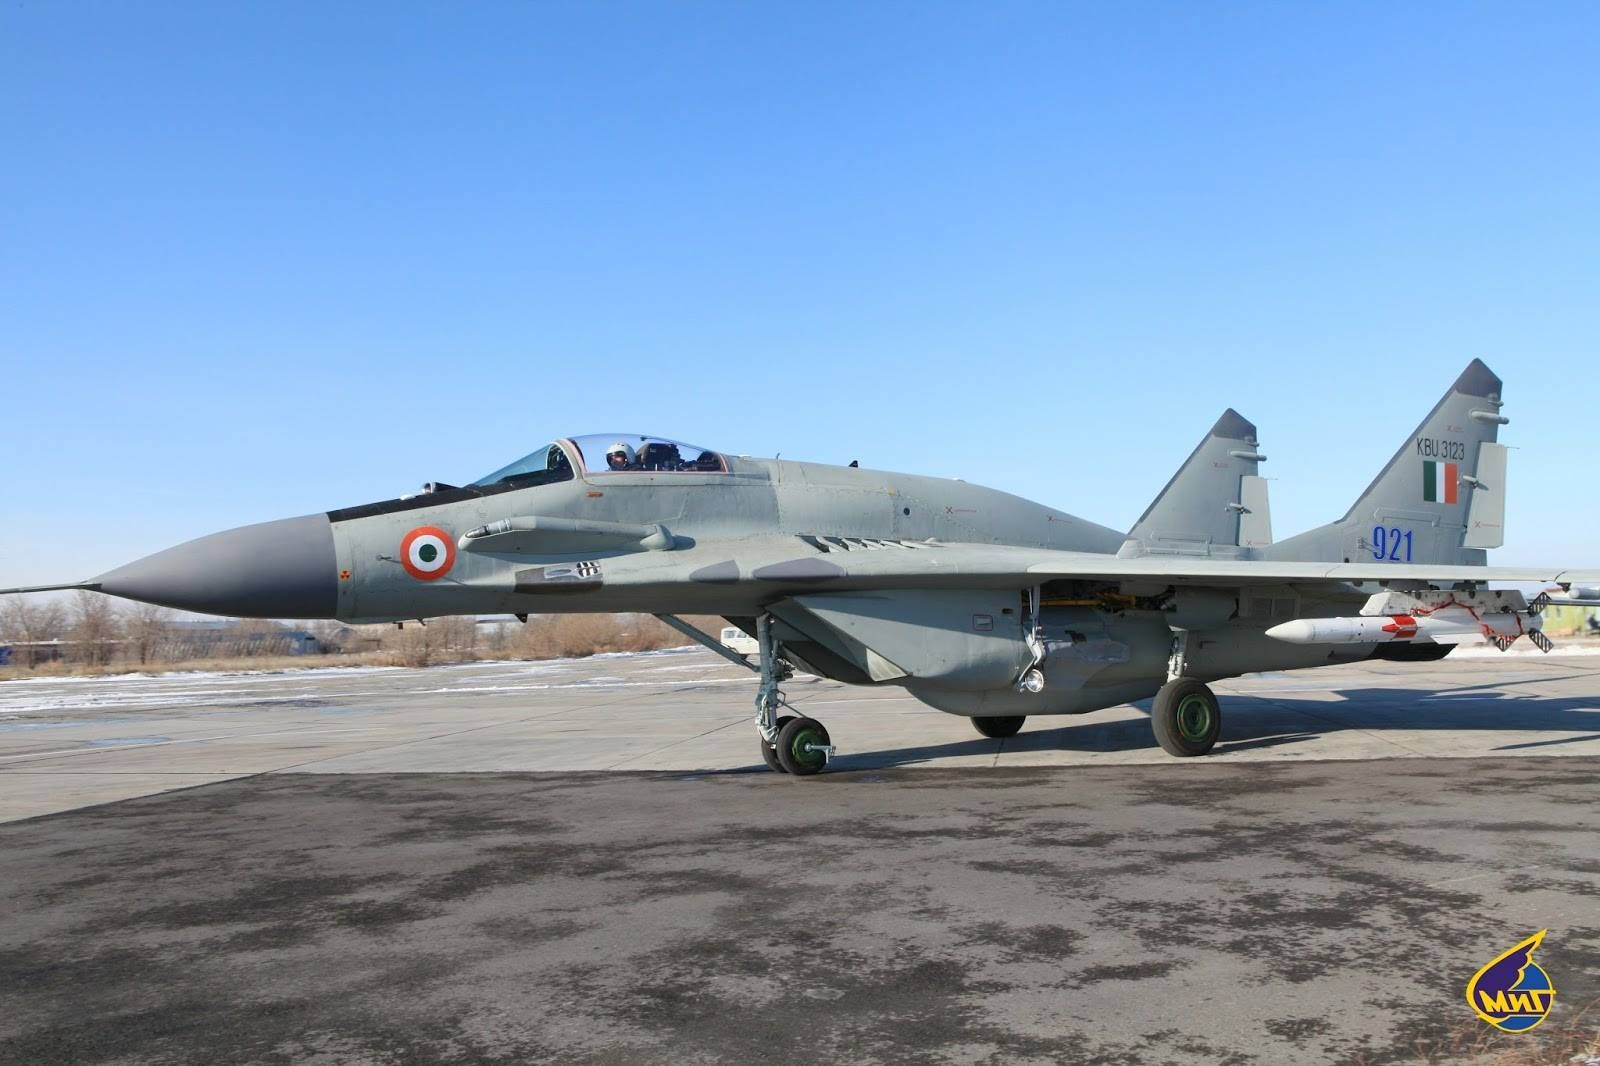 Indian Airforce's upgraded MiG-29 UPG armed with the R-77